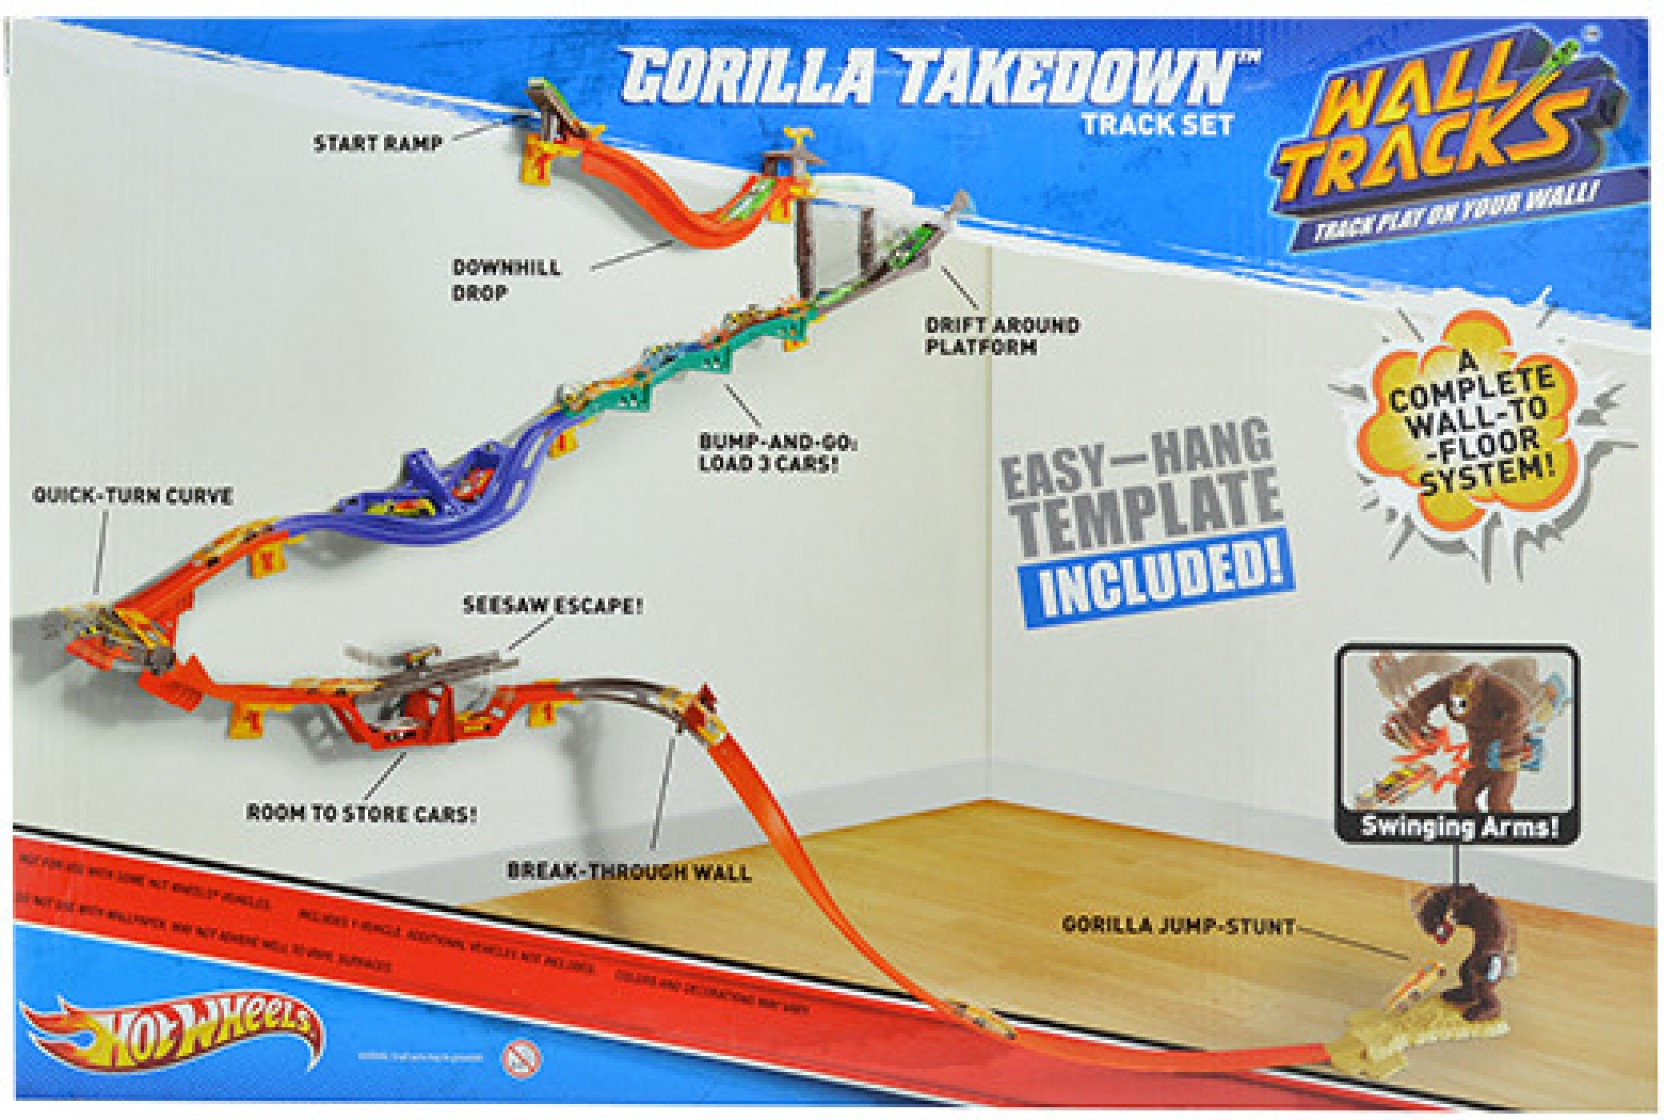 Hot wheels gorilla takedown wall to floor action track for Hot wheels wall tracks template